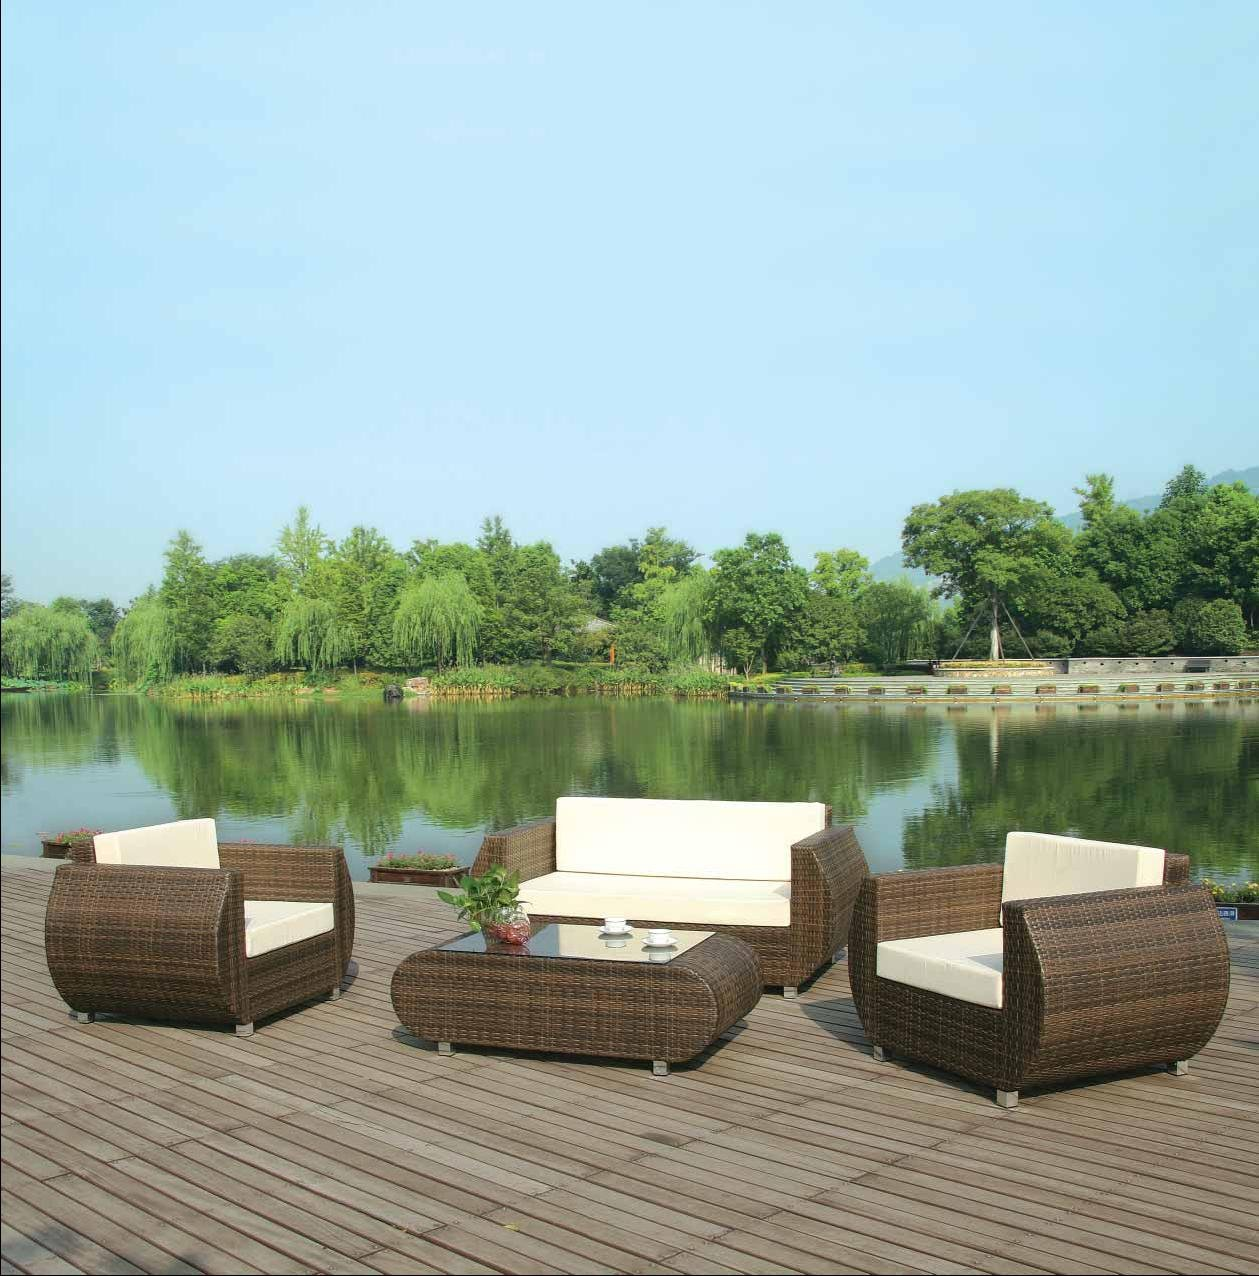 rattan gartenm bel lounge sitzgruppe ibiza 4 teilig hellbraun alurahmen hochwertig. Black Bedroom Furniture Sets. Home Design Ideas